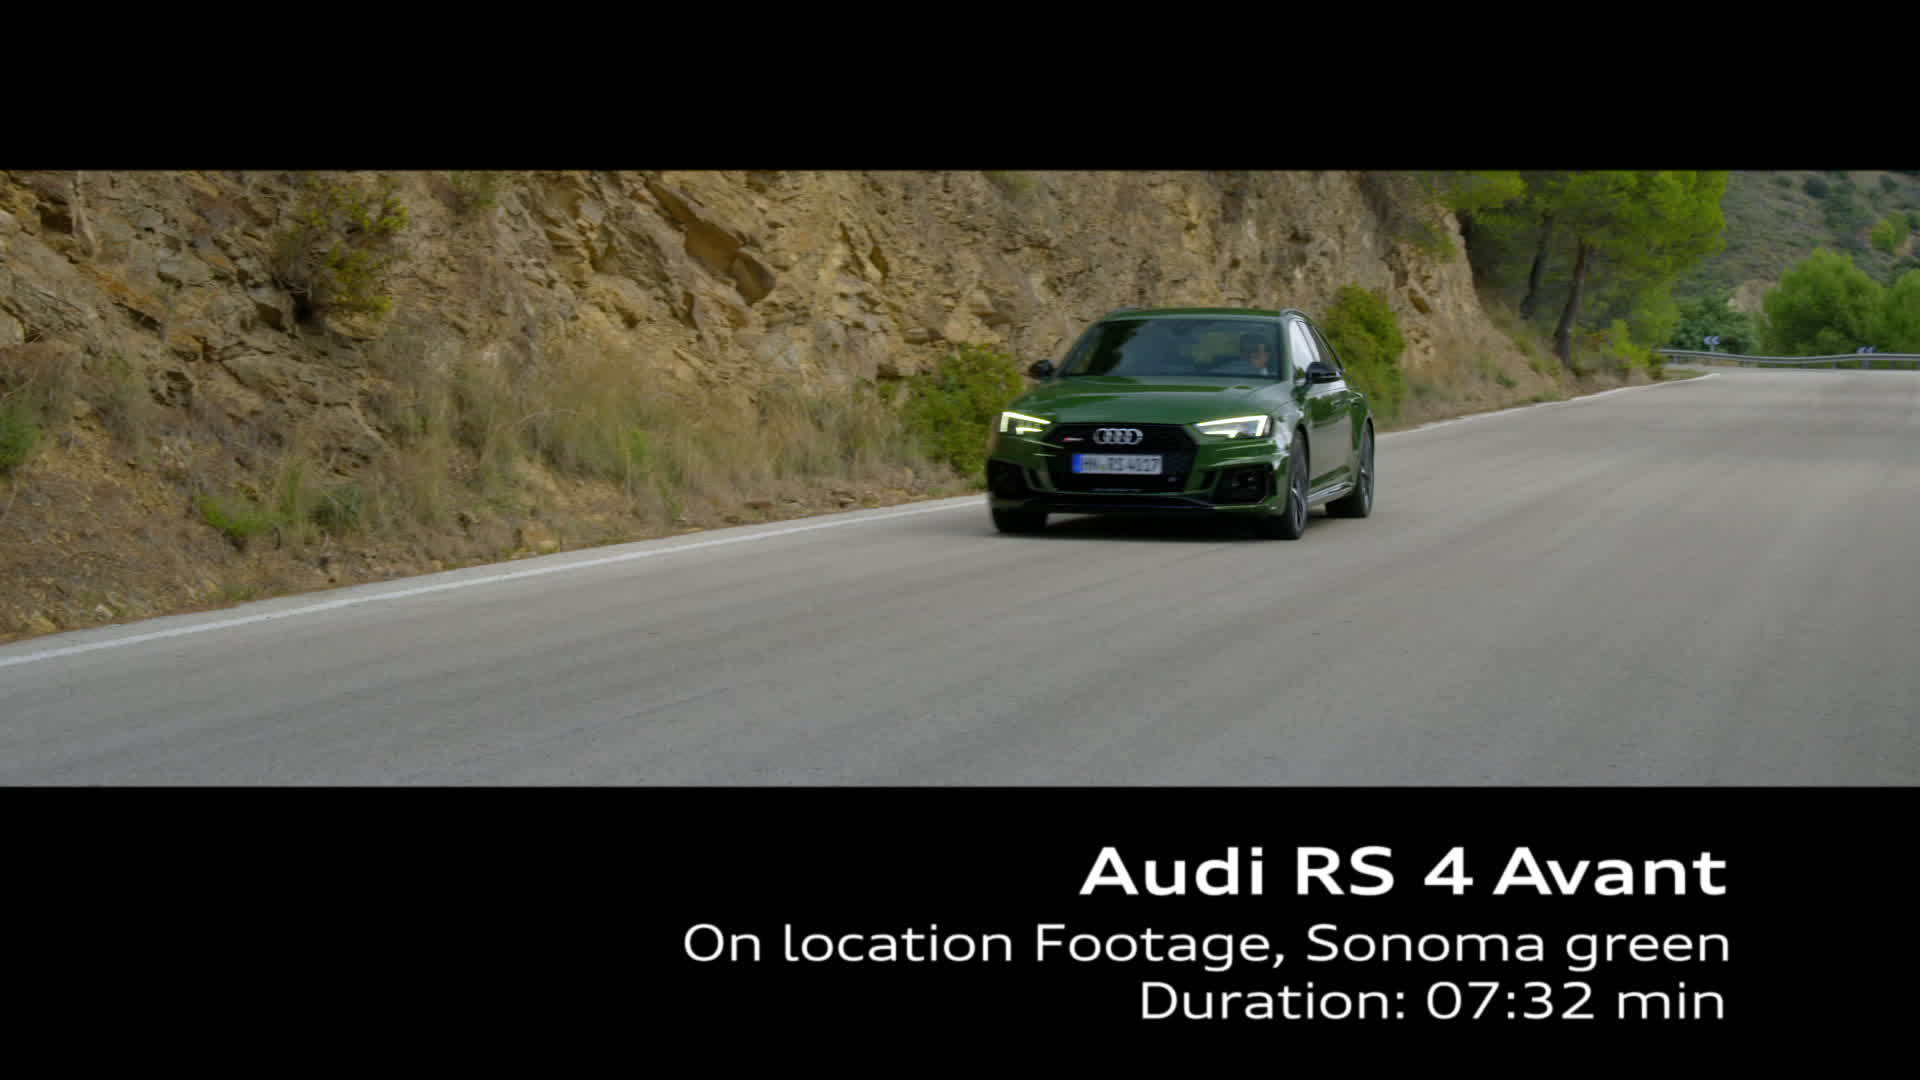 Audi RS 4 (2017) Footage on location - Sonoma Green